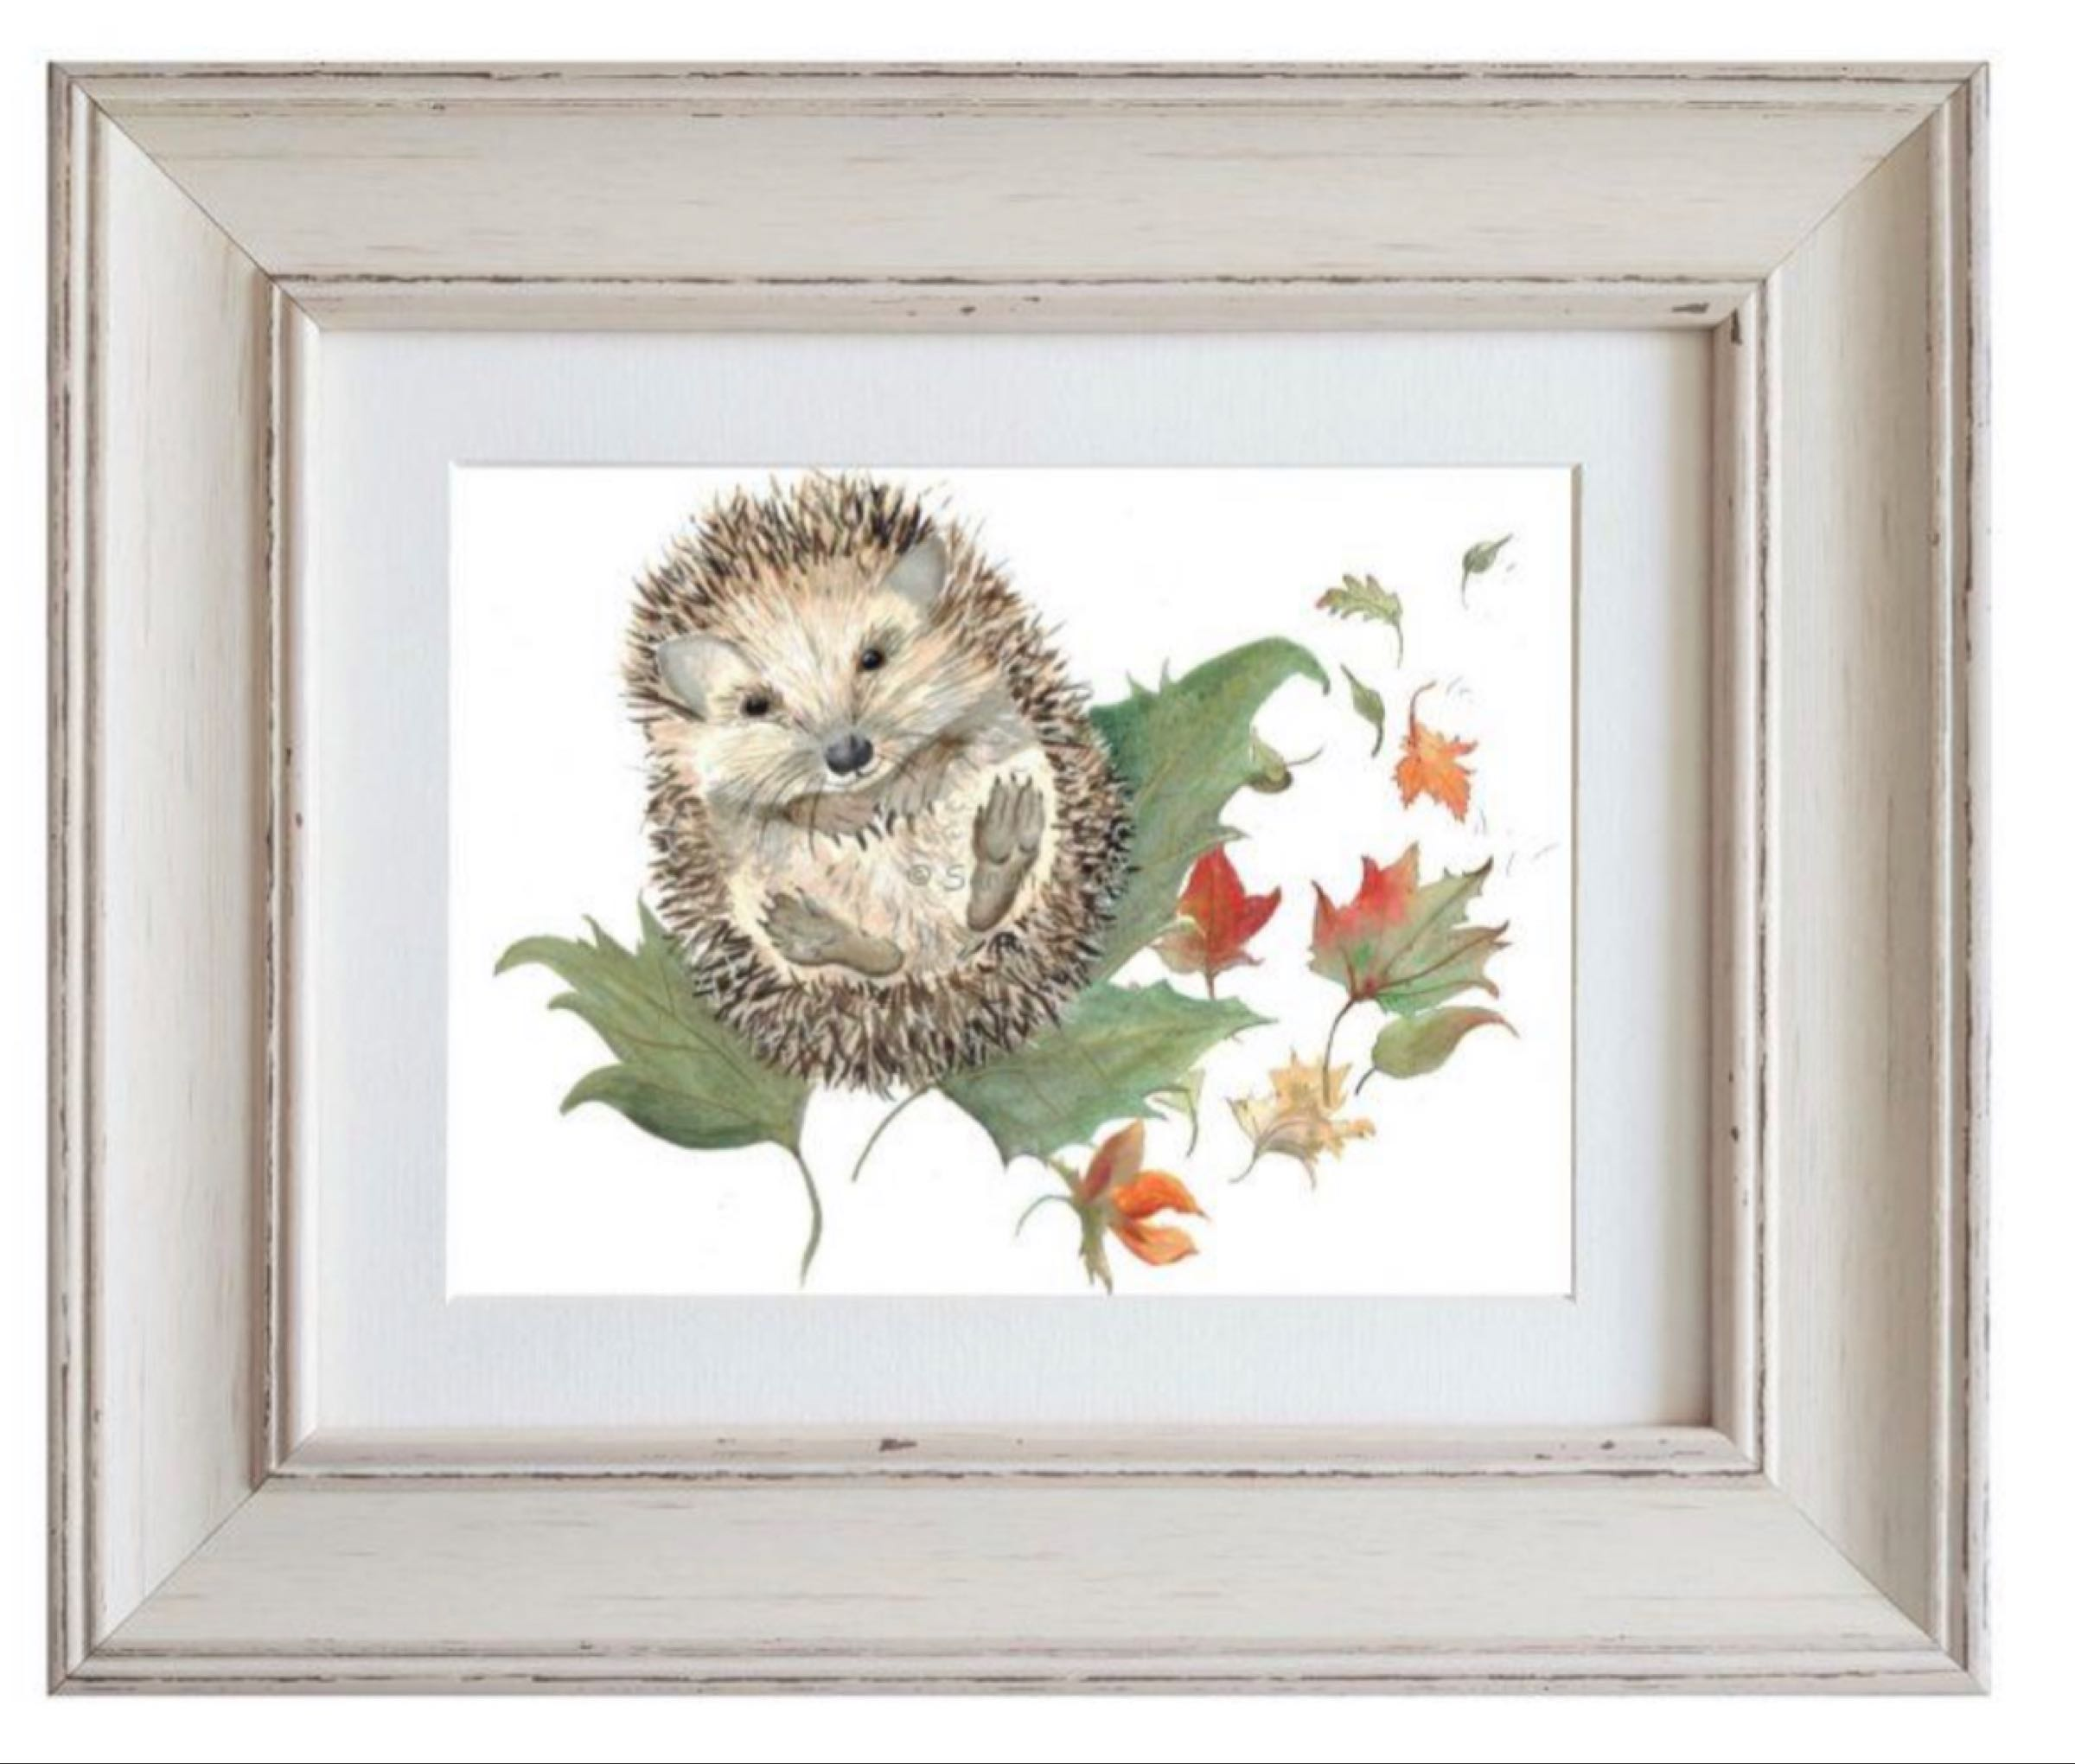 Mr Prickles Hedgehog Framed Print by Sarah Reilly 28cmx33cm